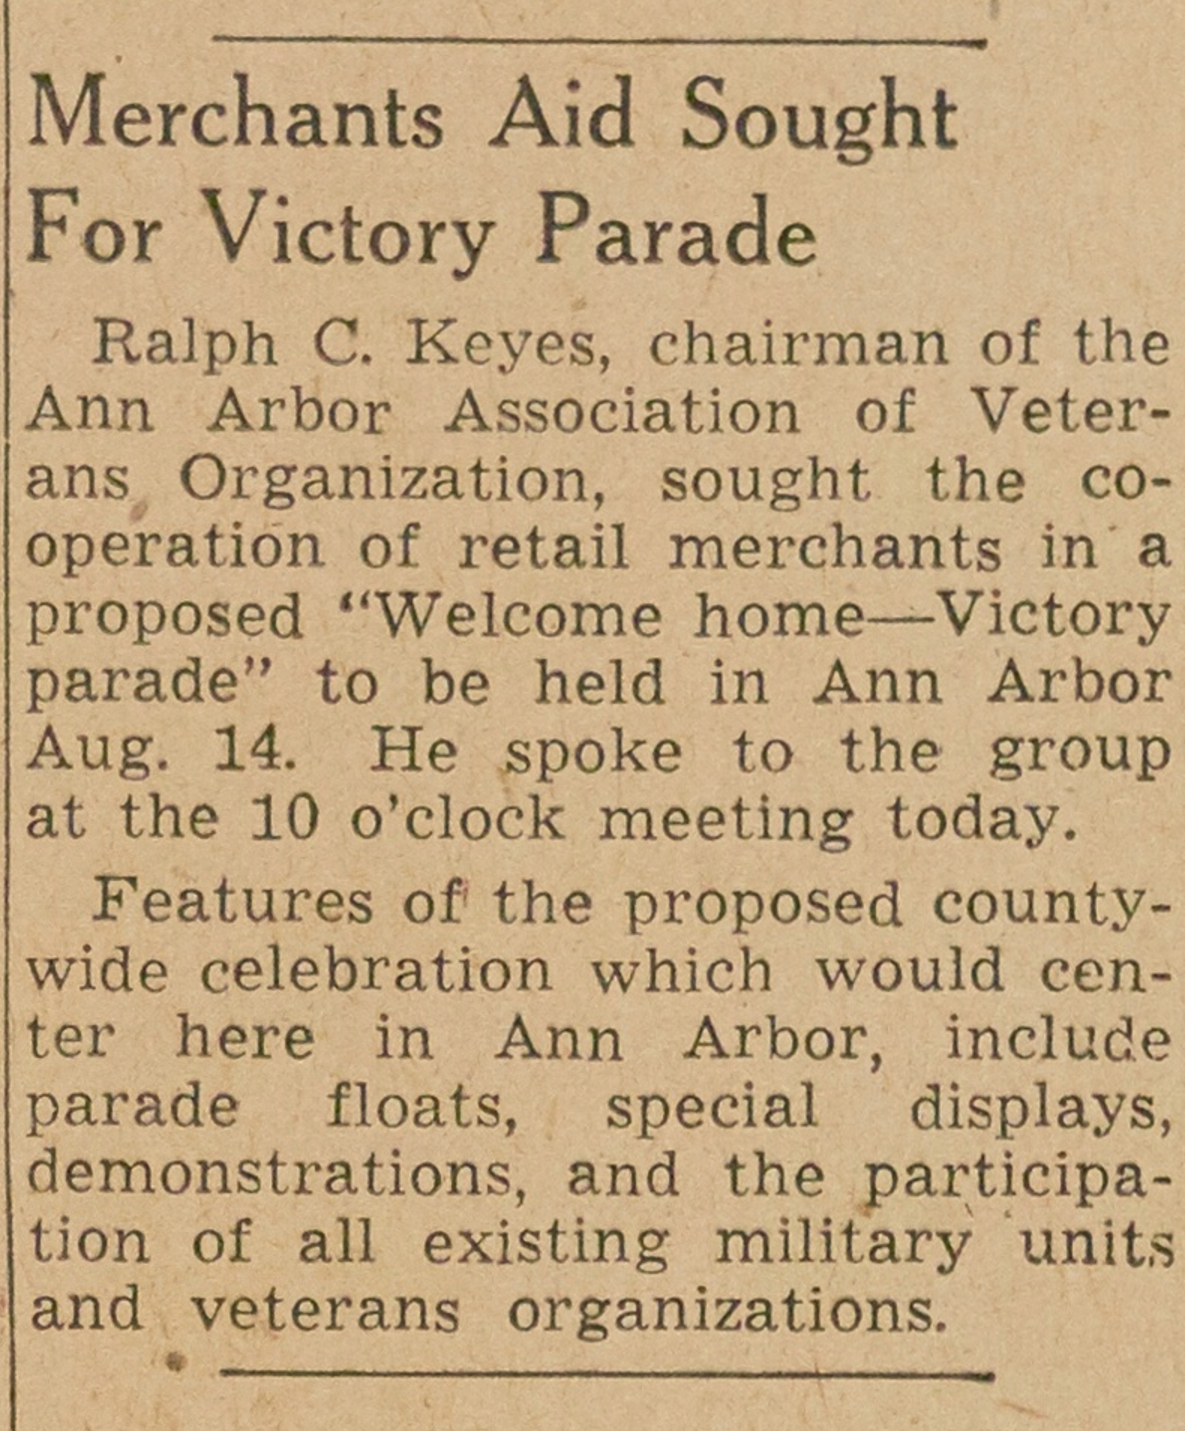 Merchants Aid Sought For Victory Parade image